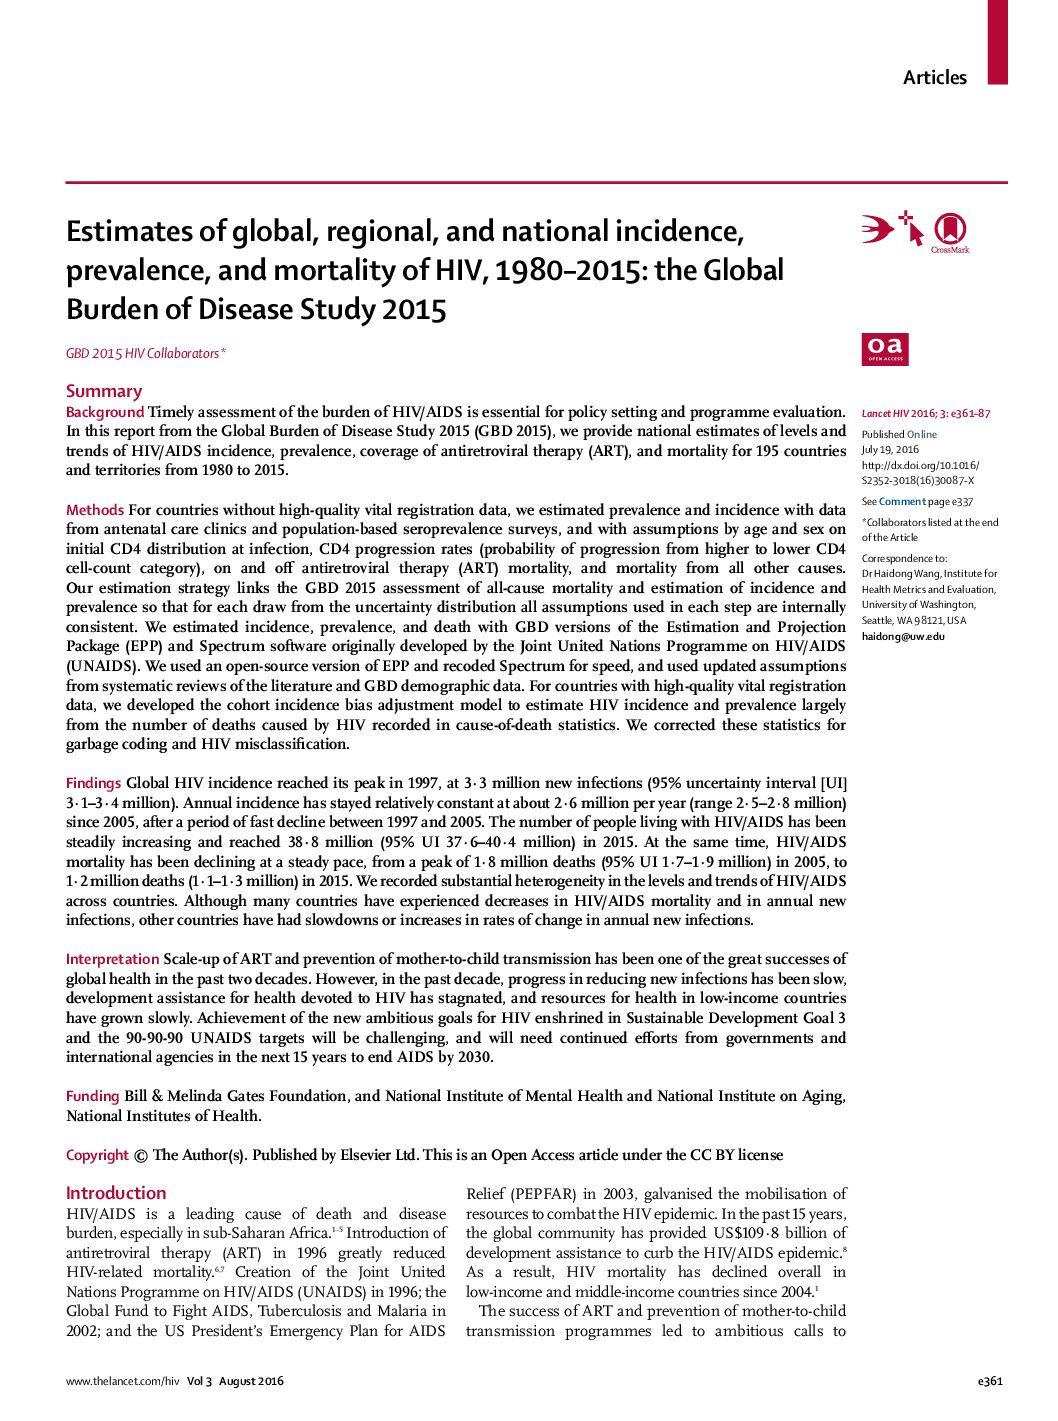 Estimates of global, regional, and national incidence, prevalence, and mortality of HIV, 1980–2015 the global burden of disease study 2015.